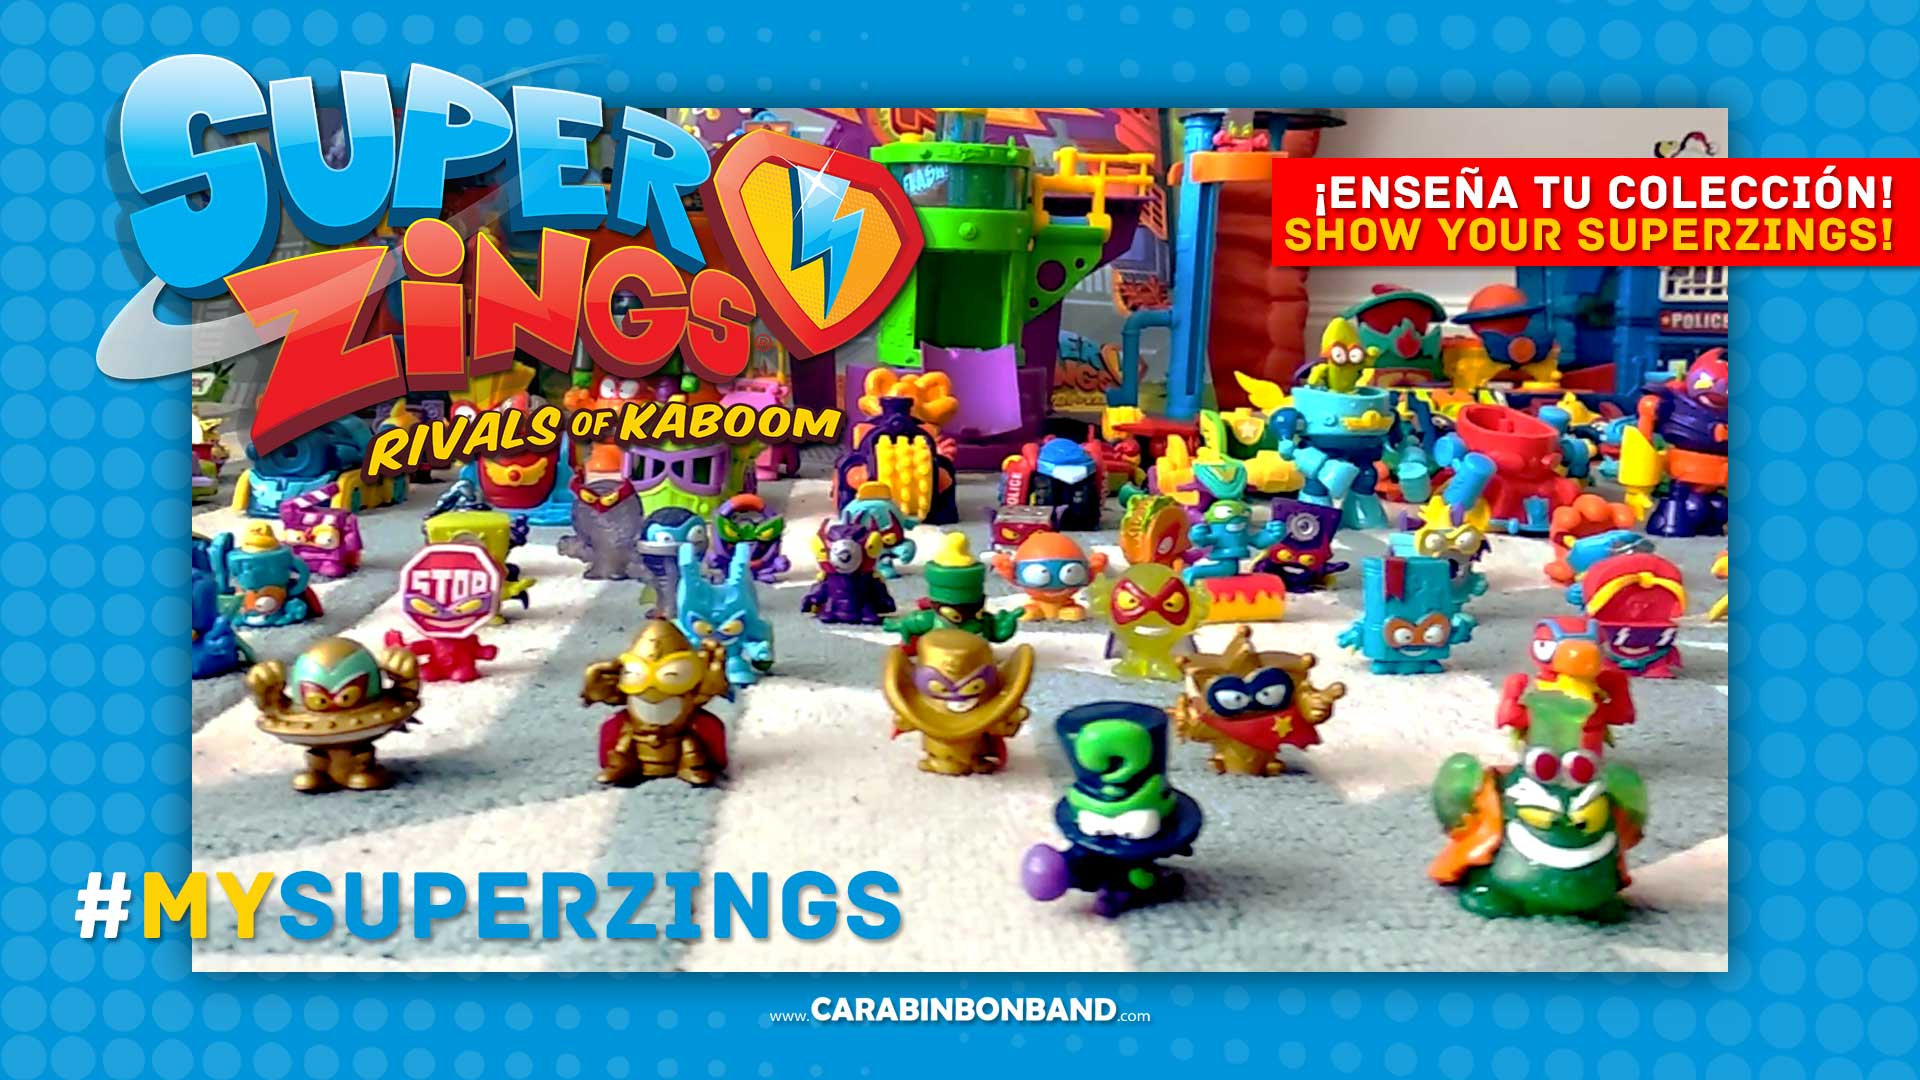 We show you our COMPLETE COLLECTION OF #SUPERZINGS! Can you show us yours?